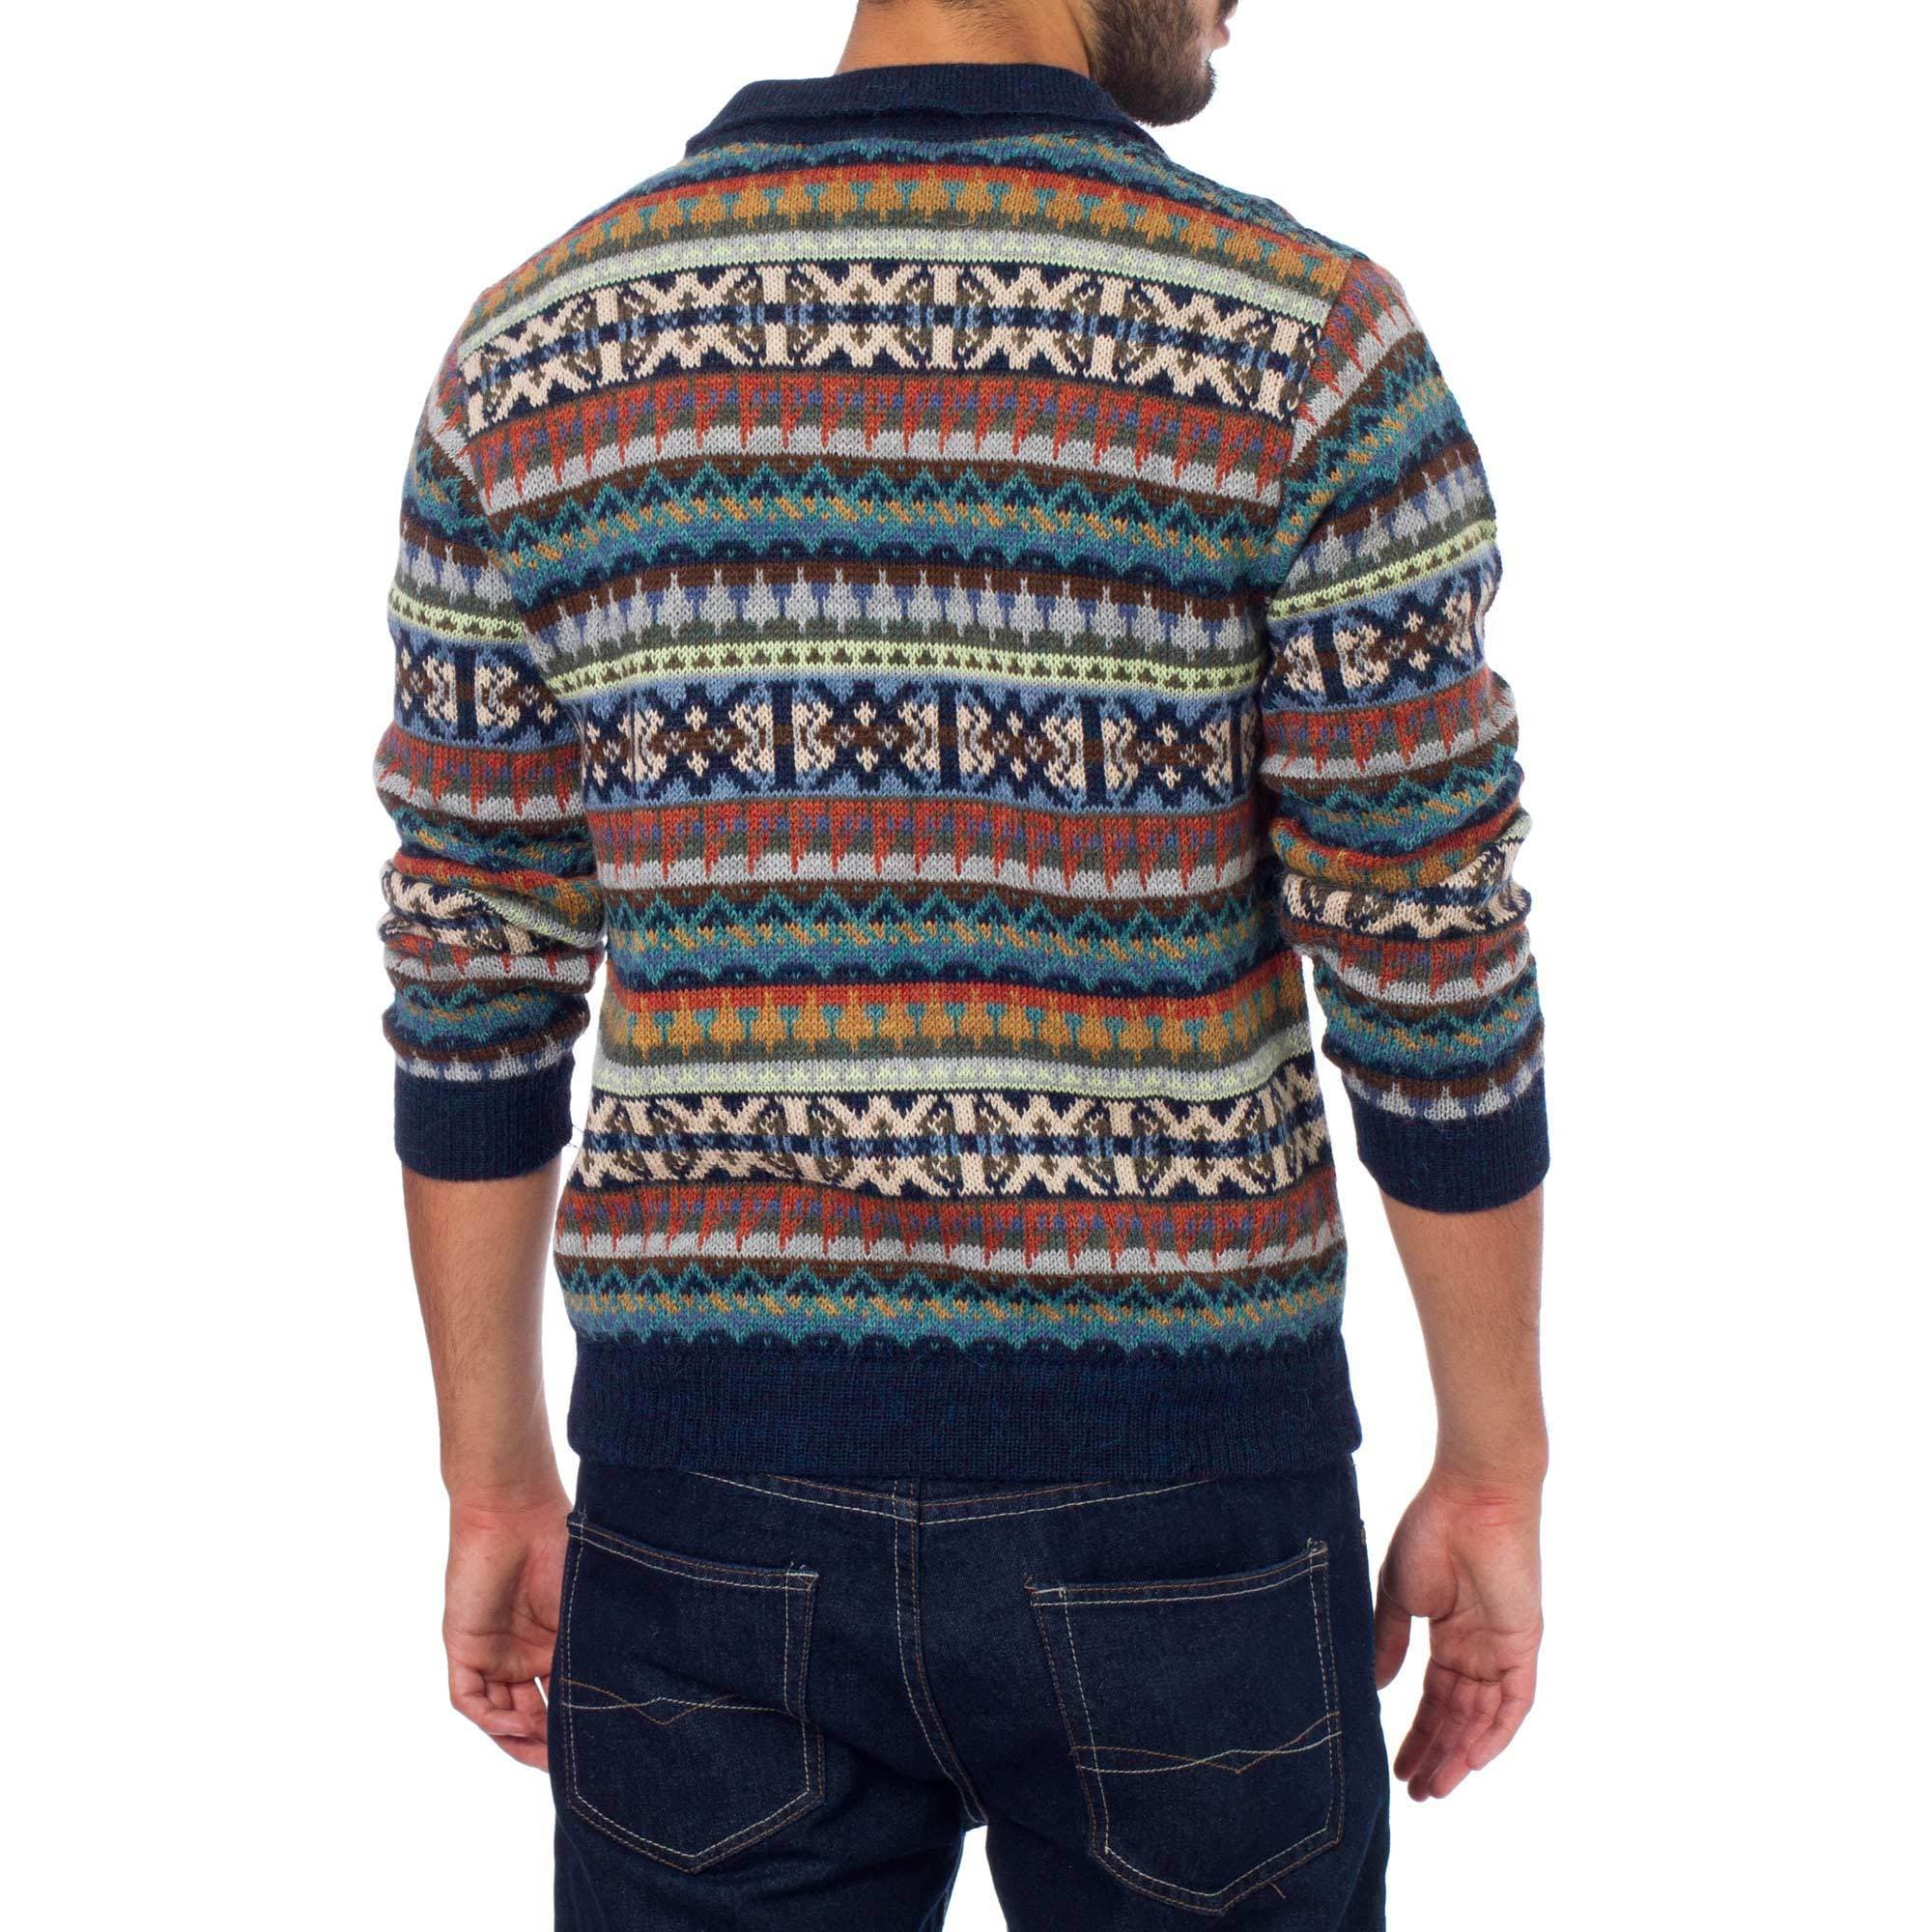 bb6848a6c5f Shop Handmade Men s Alpaca  Pisac Casual  Polo Sweater (Peru) - On Sale -  Free Shipping Today - Overstock - 10792101